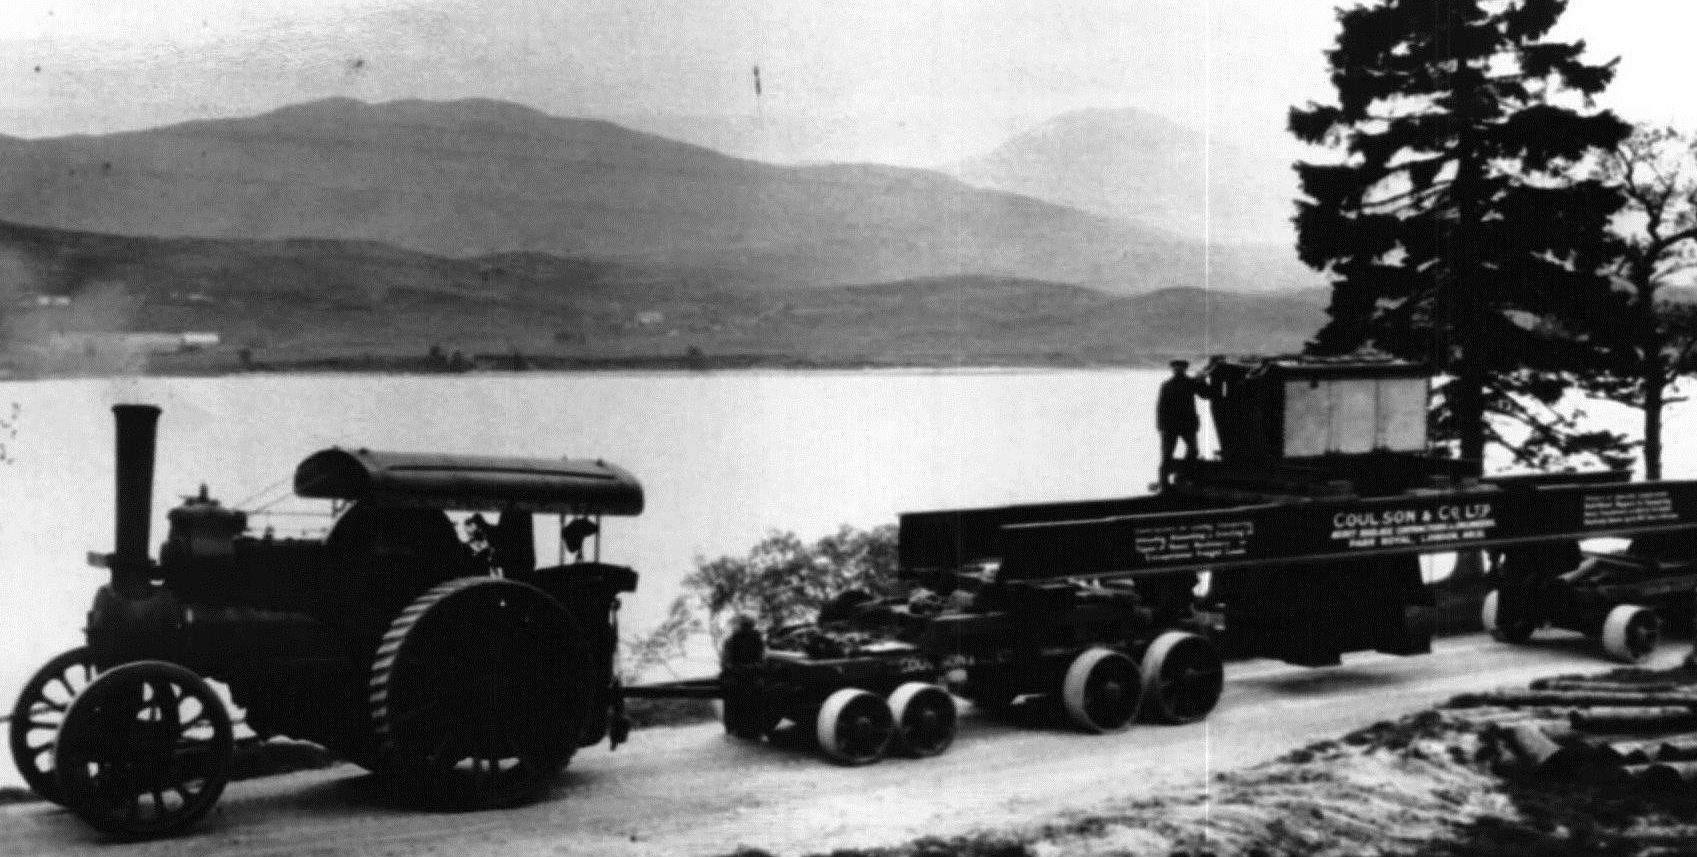 A steam engine delivers a transformer to Rannoch in the 1930s.